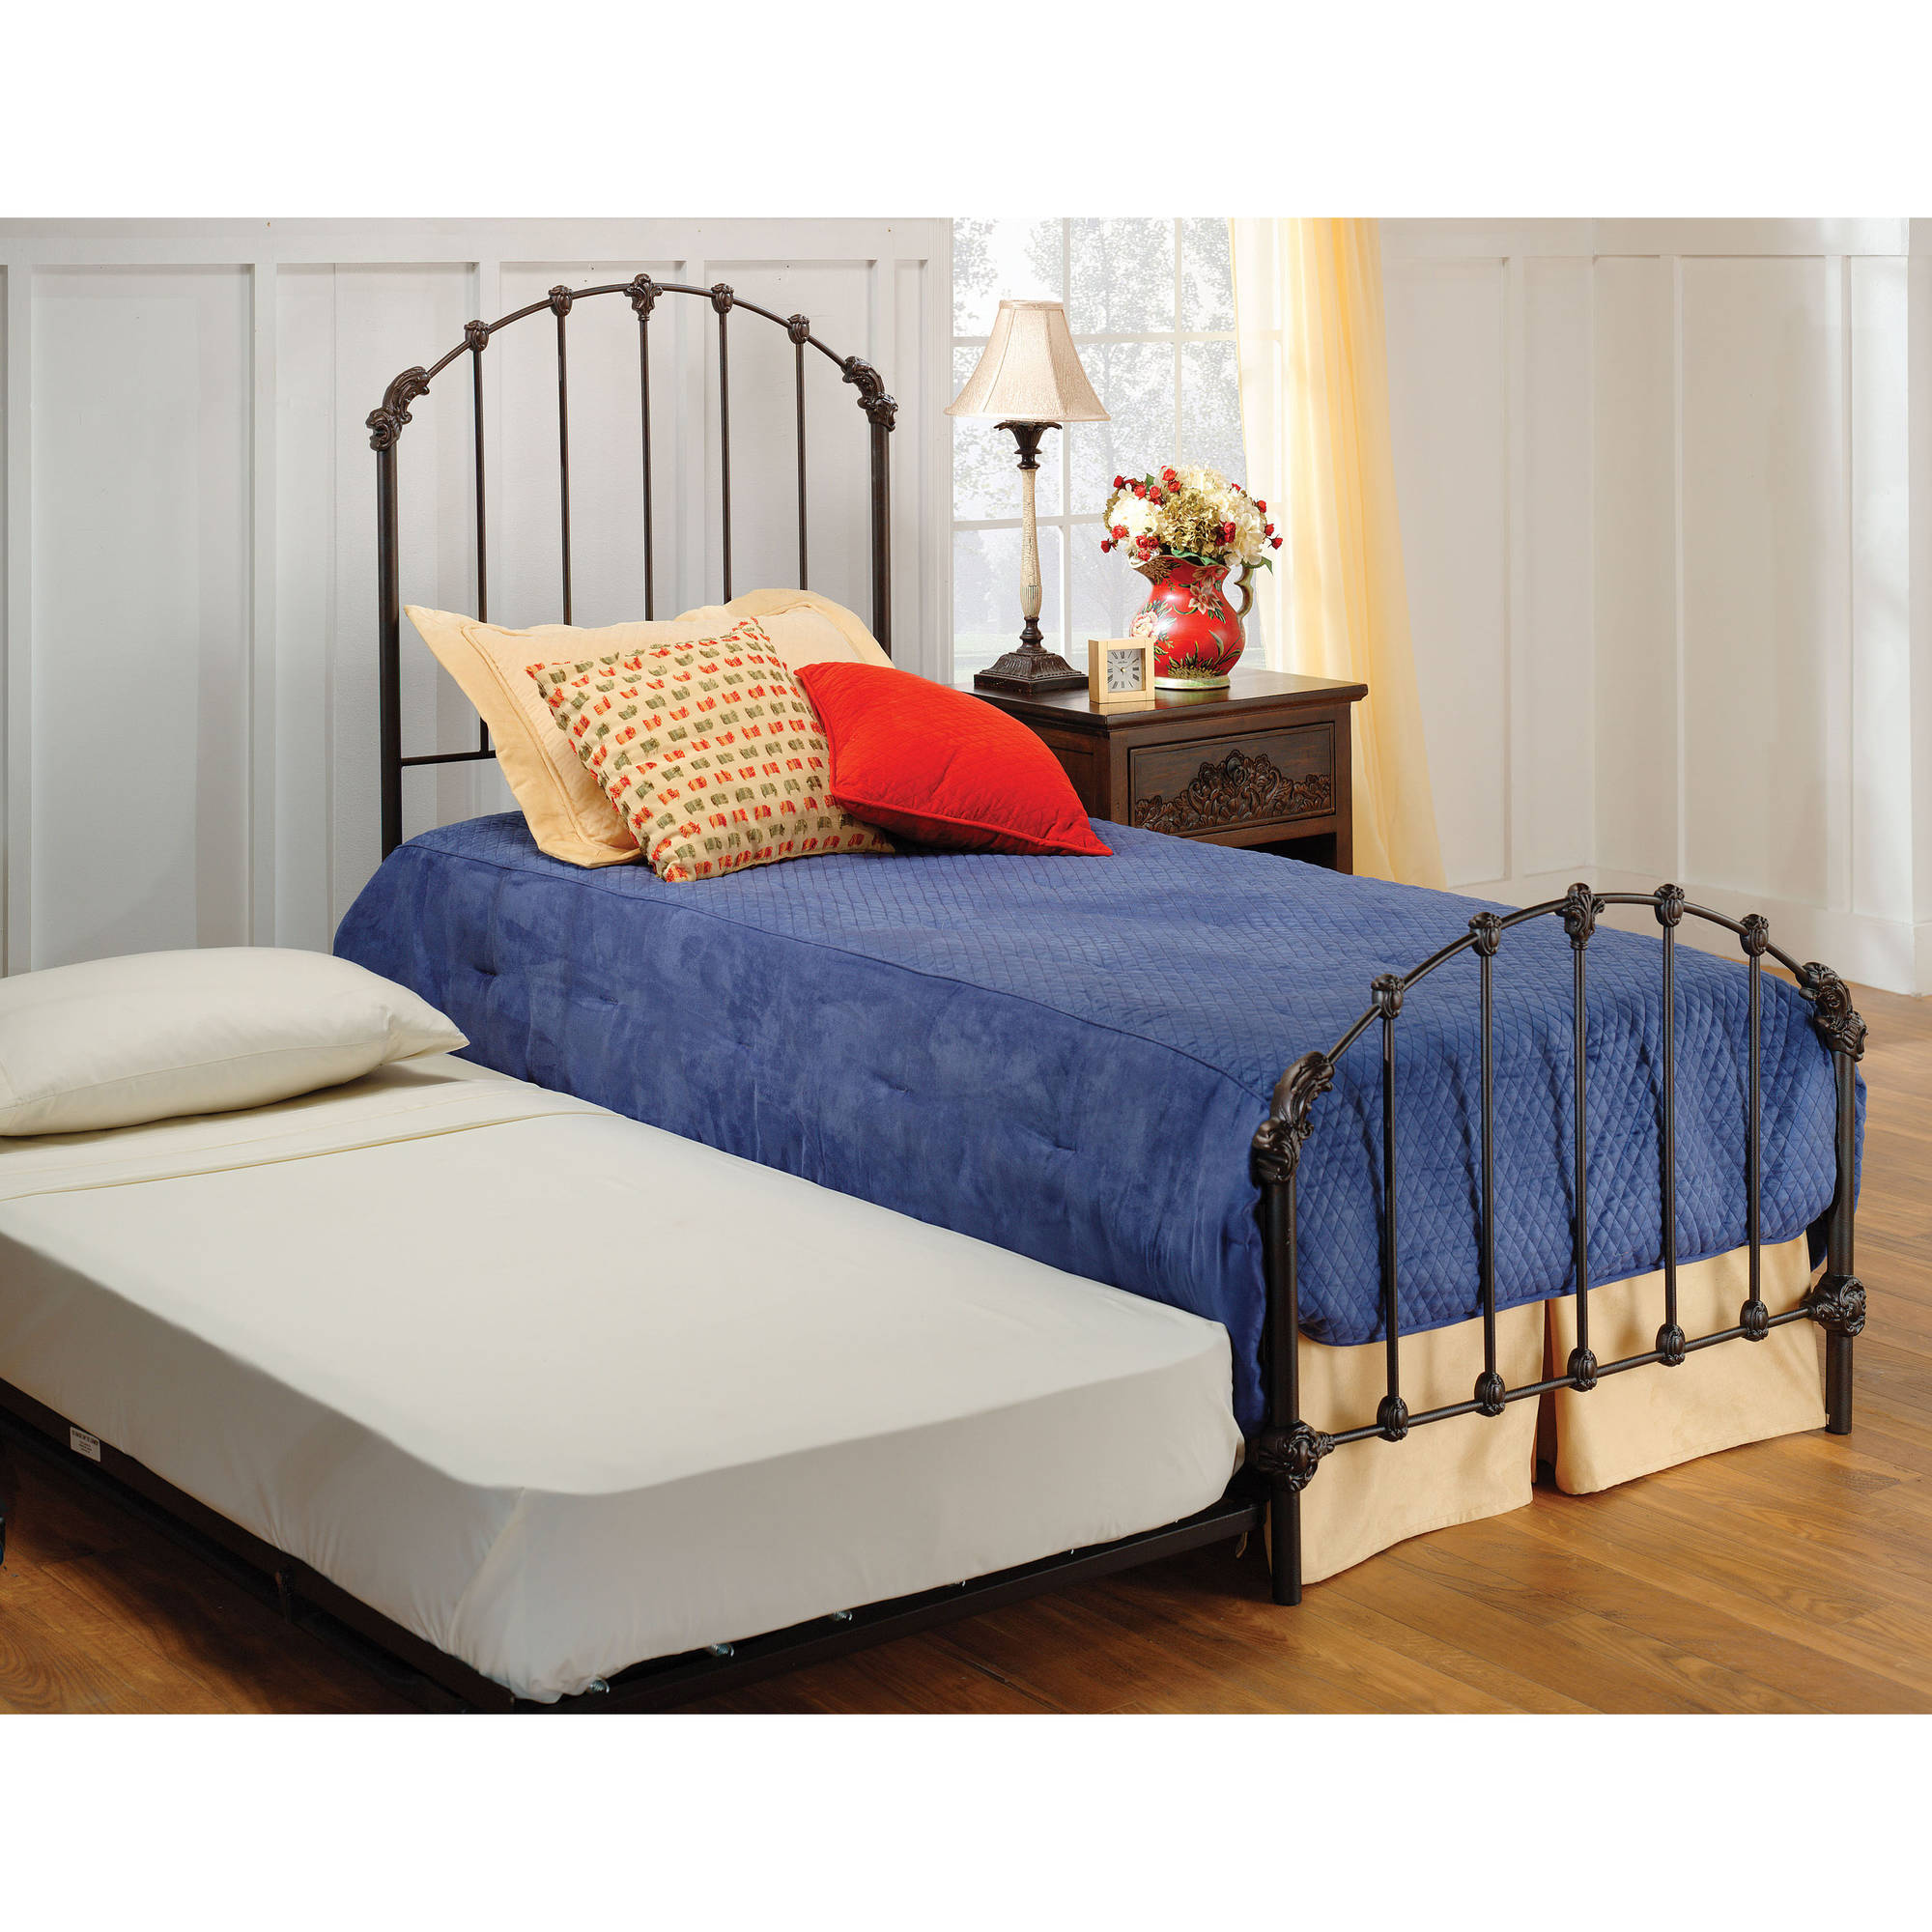 Hillsdale Furniture Bonita Twin Bed with Bedframe and Trundle by Hillsdale Furniture